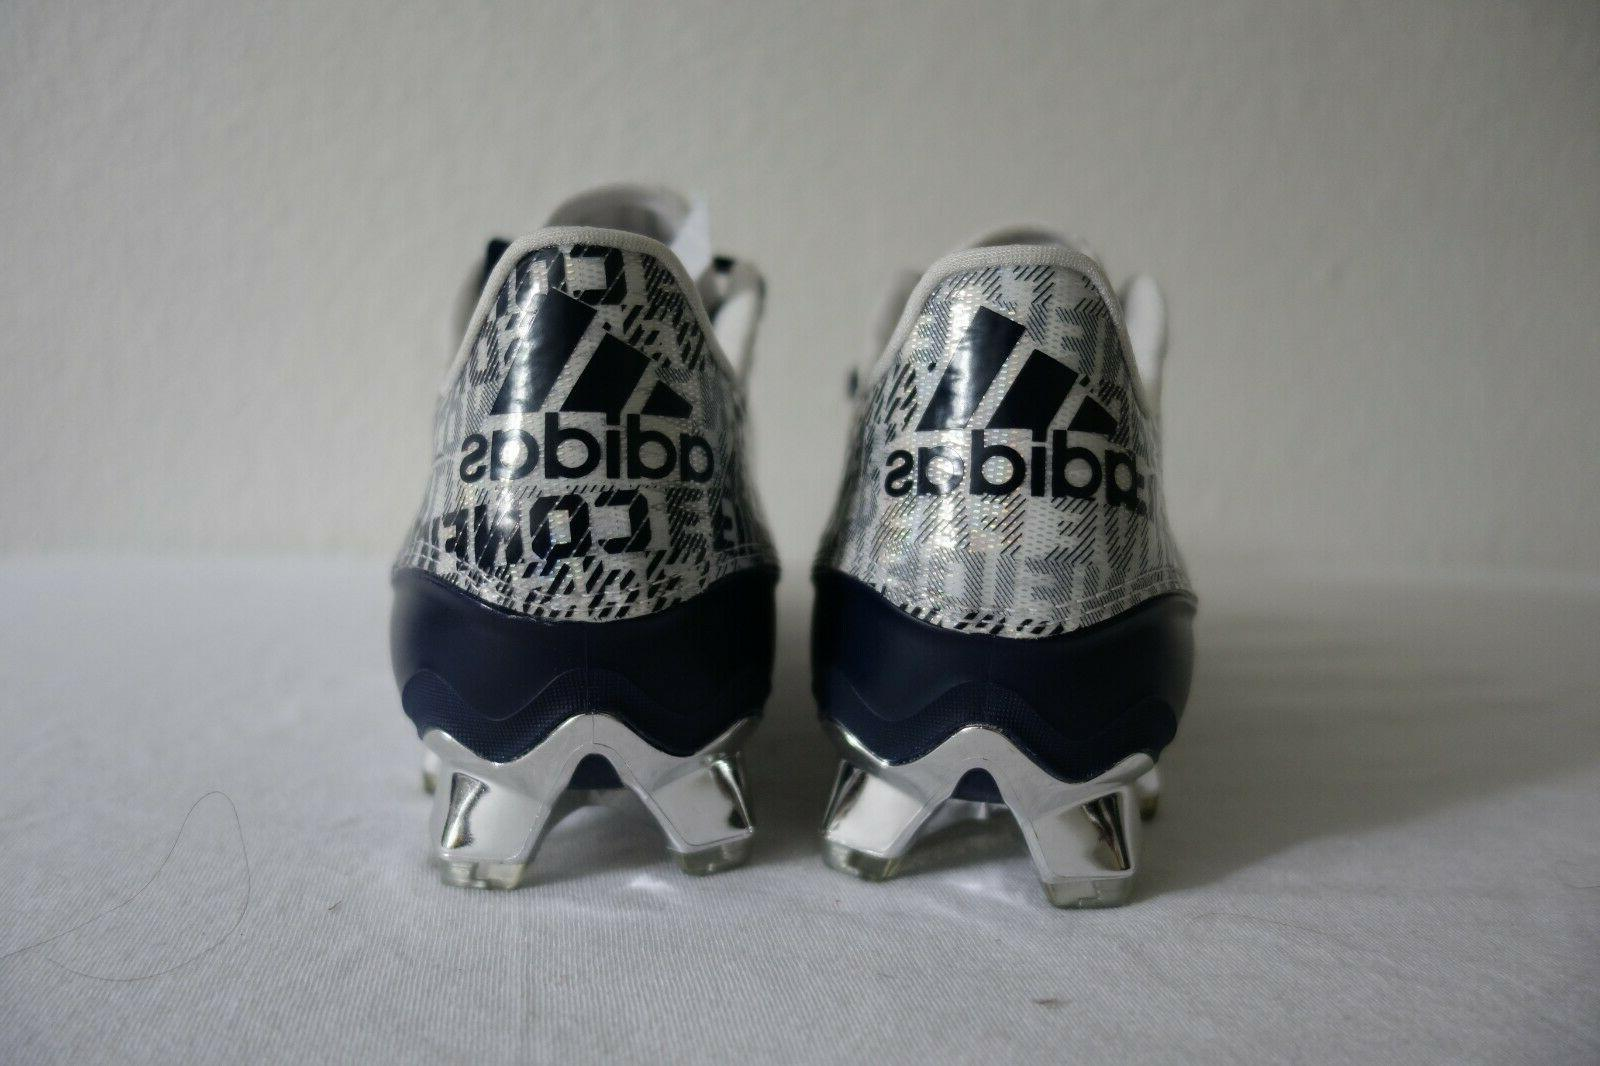 Adidas Cleats, 10, Medium Fit, Cleats, and